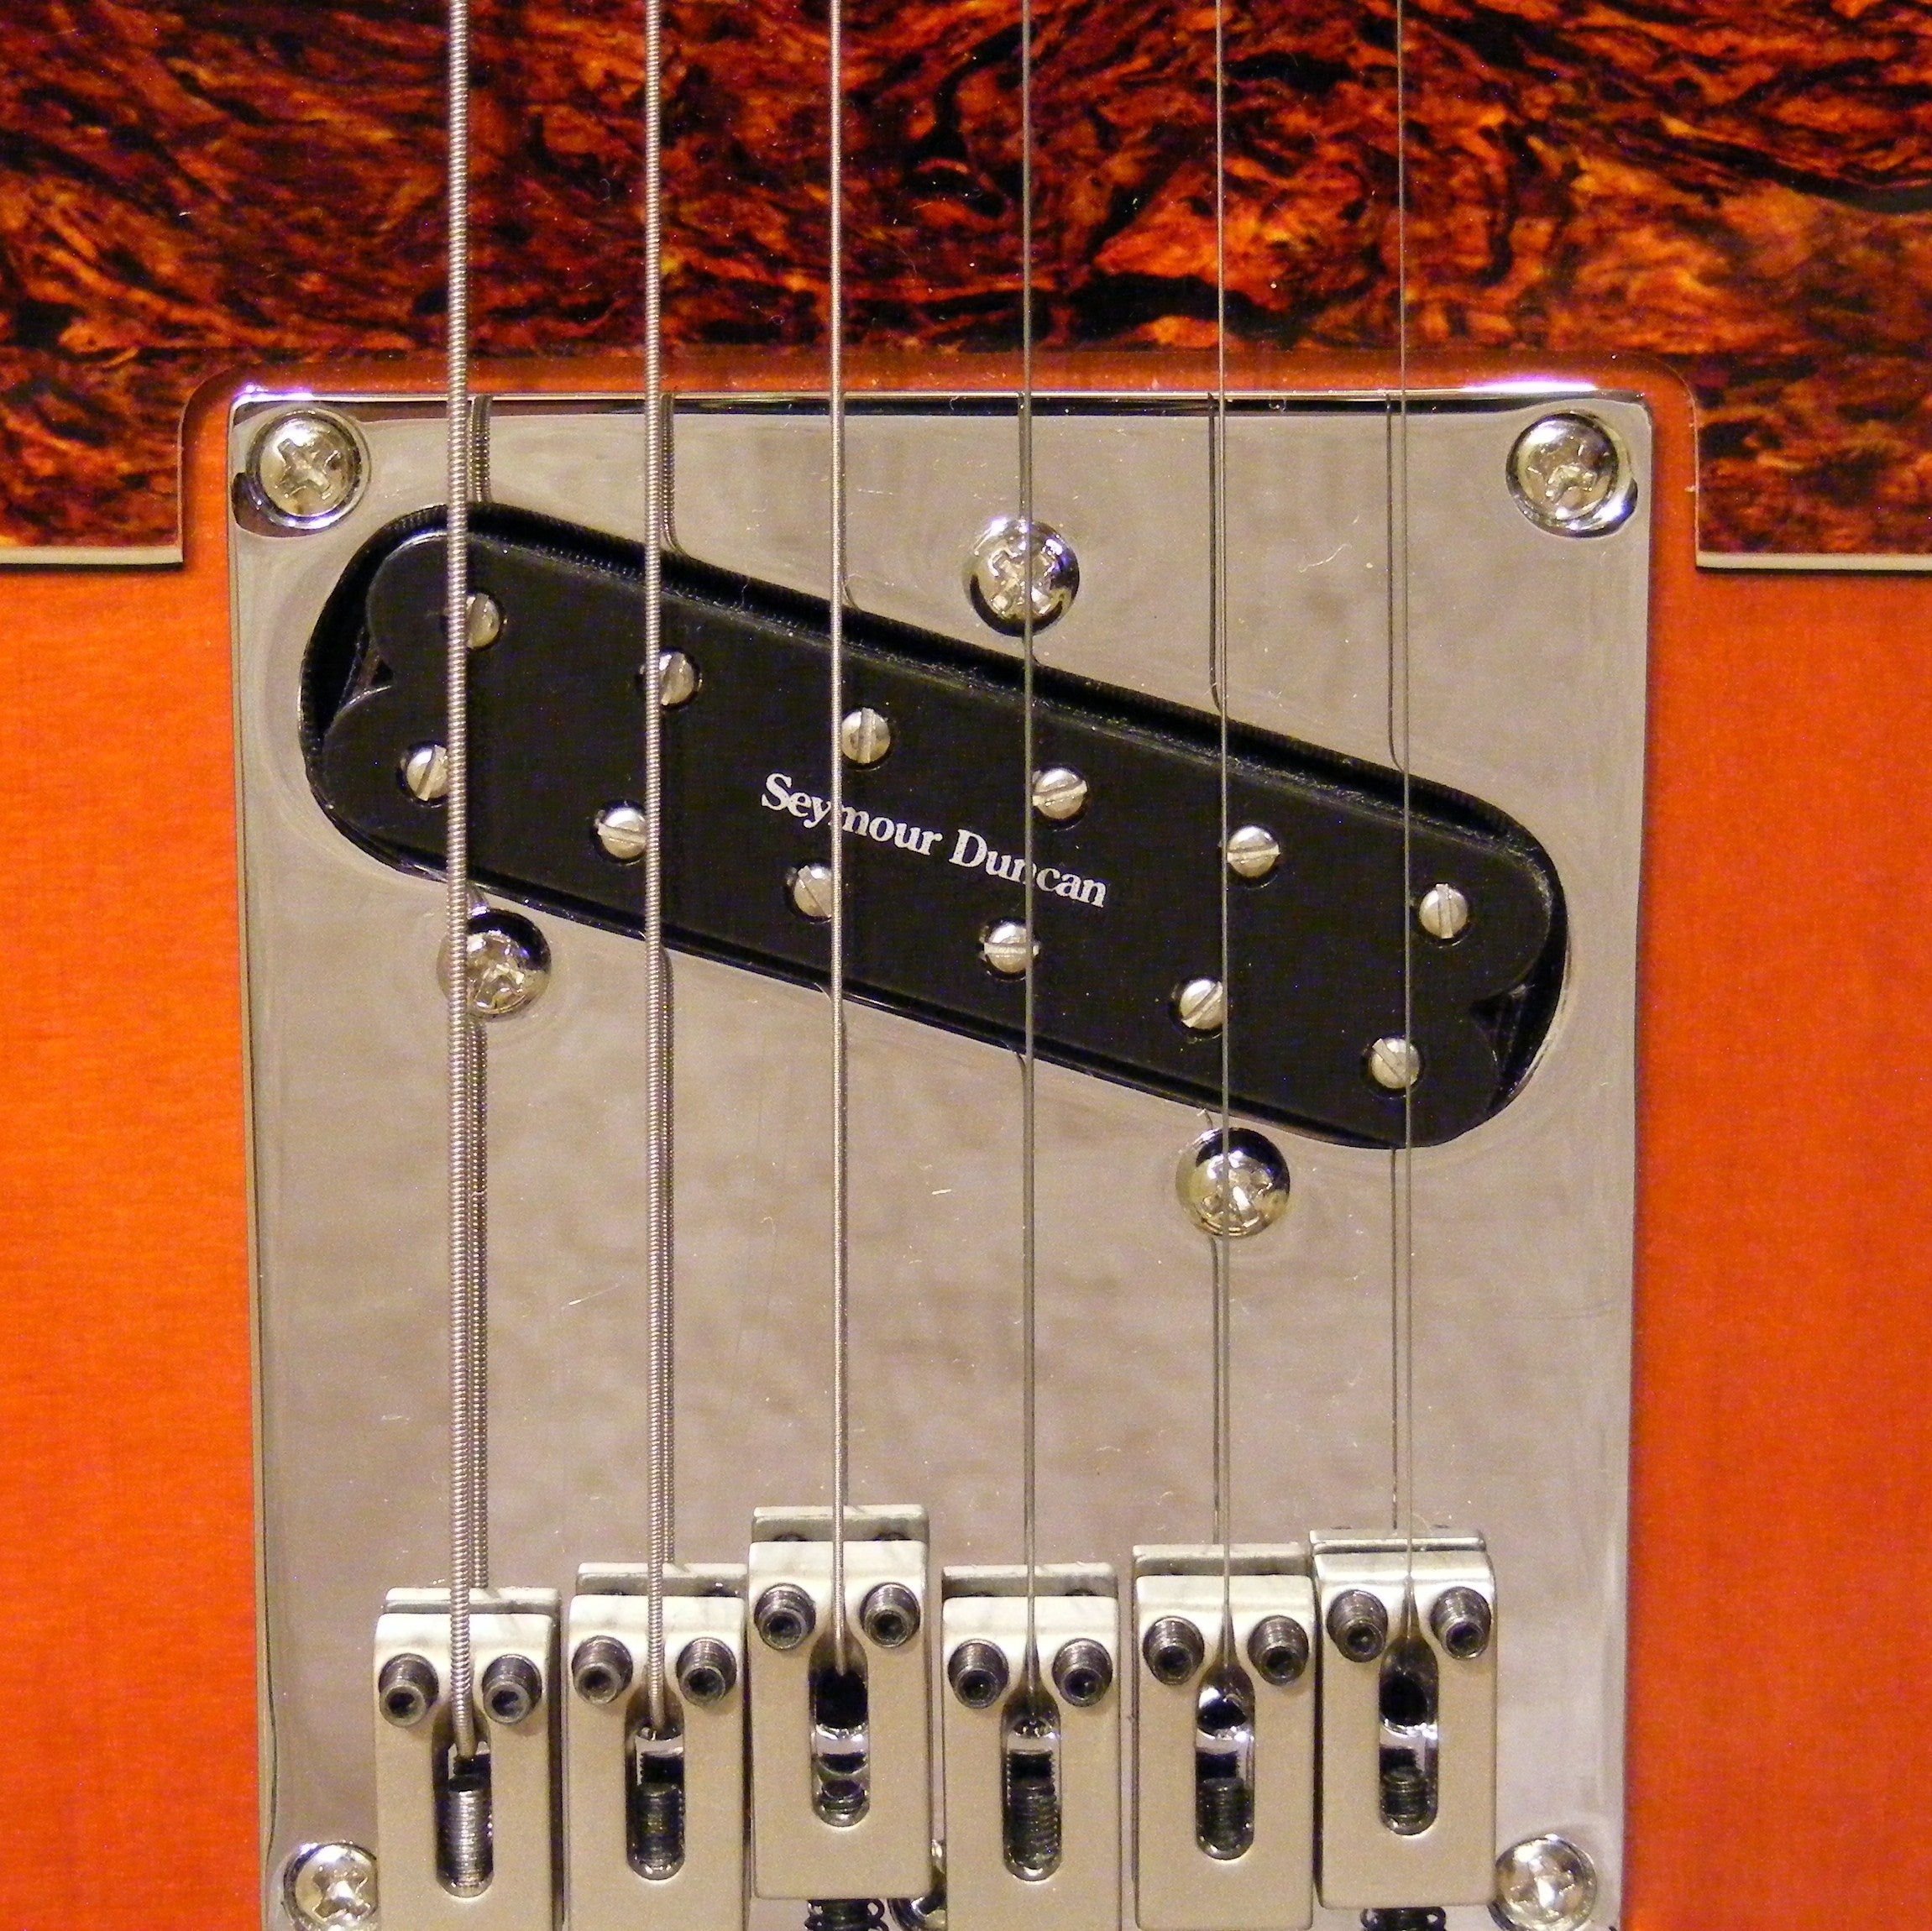 holiday electric guitar wiring diagram replacing the pickups in your guitar 17 steps  with pictures  replacing the pickups in your guitar